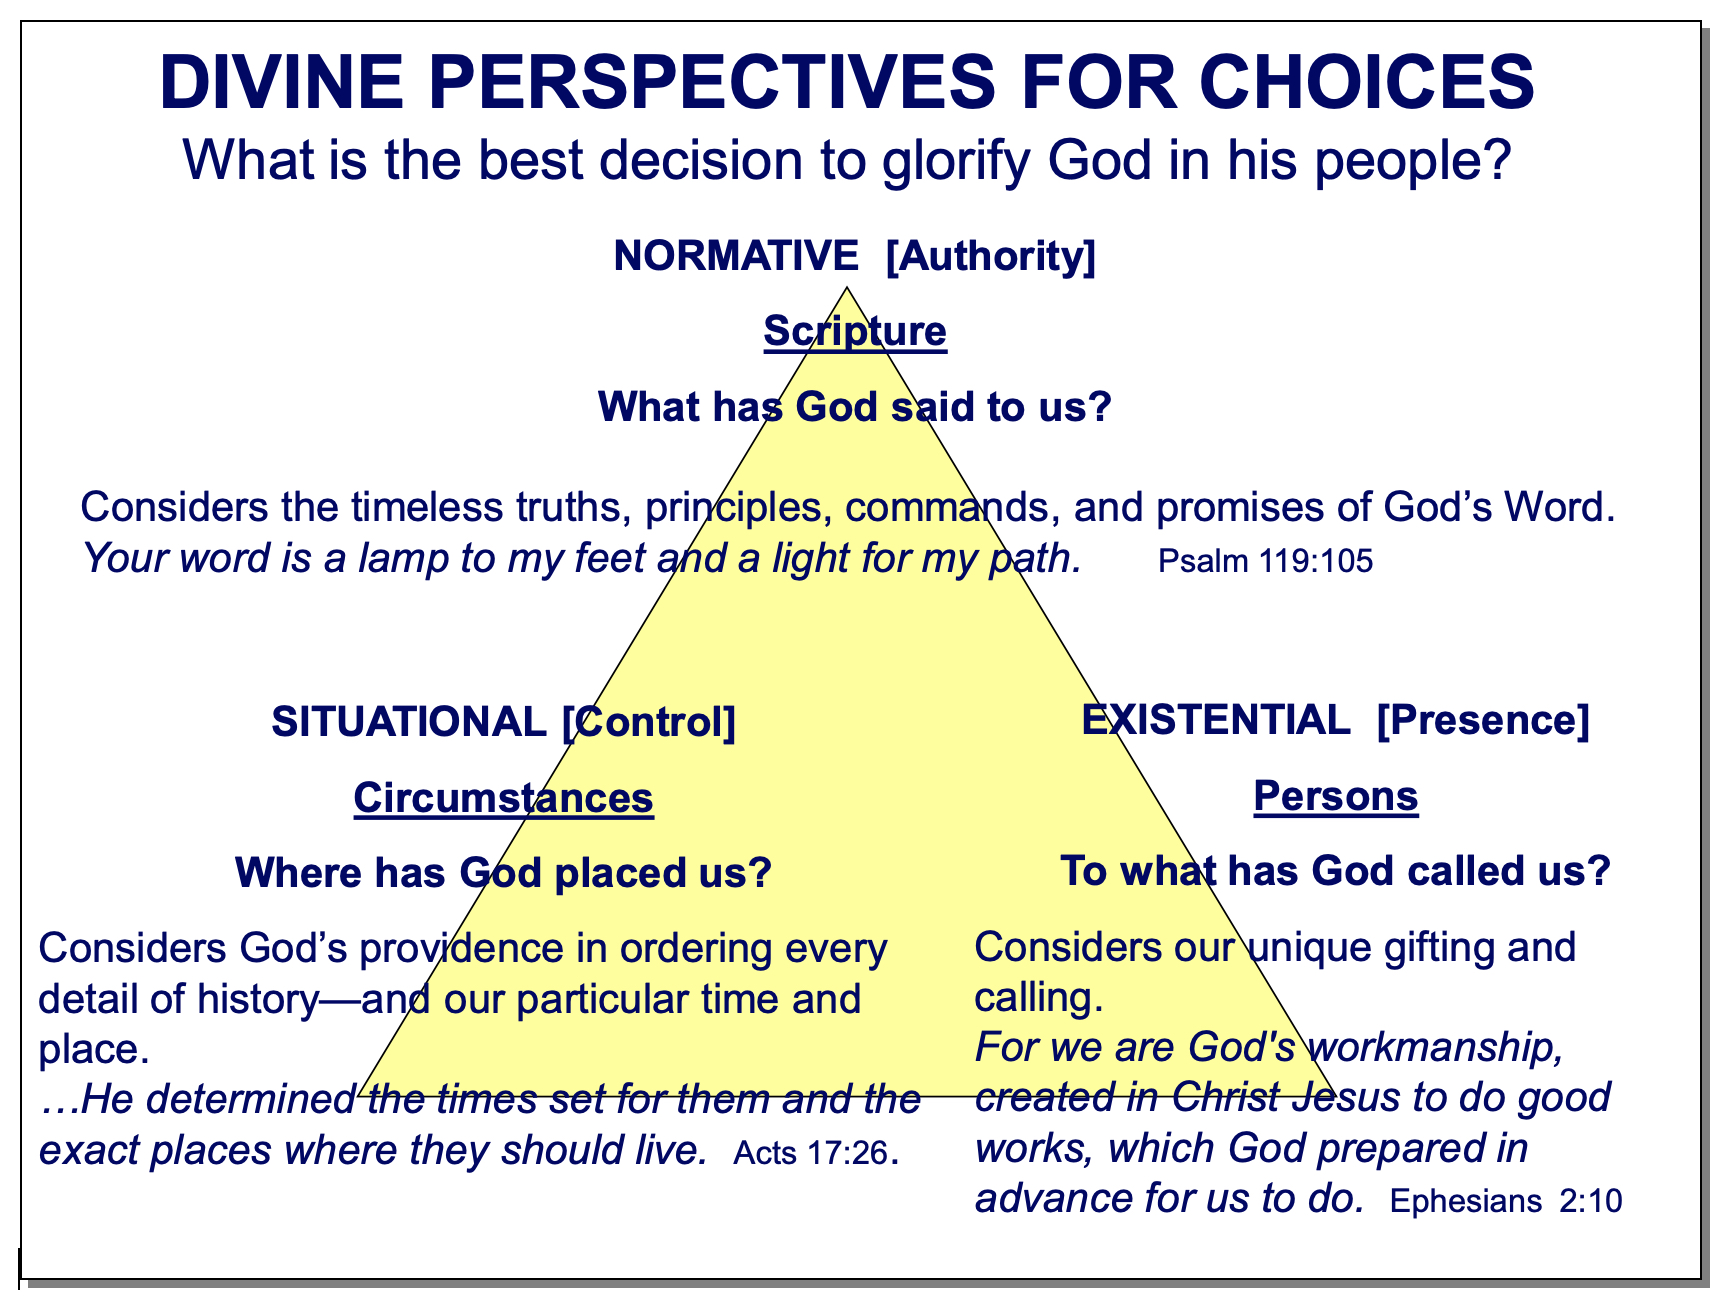 Divine Perspectives for Choices